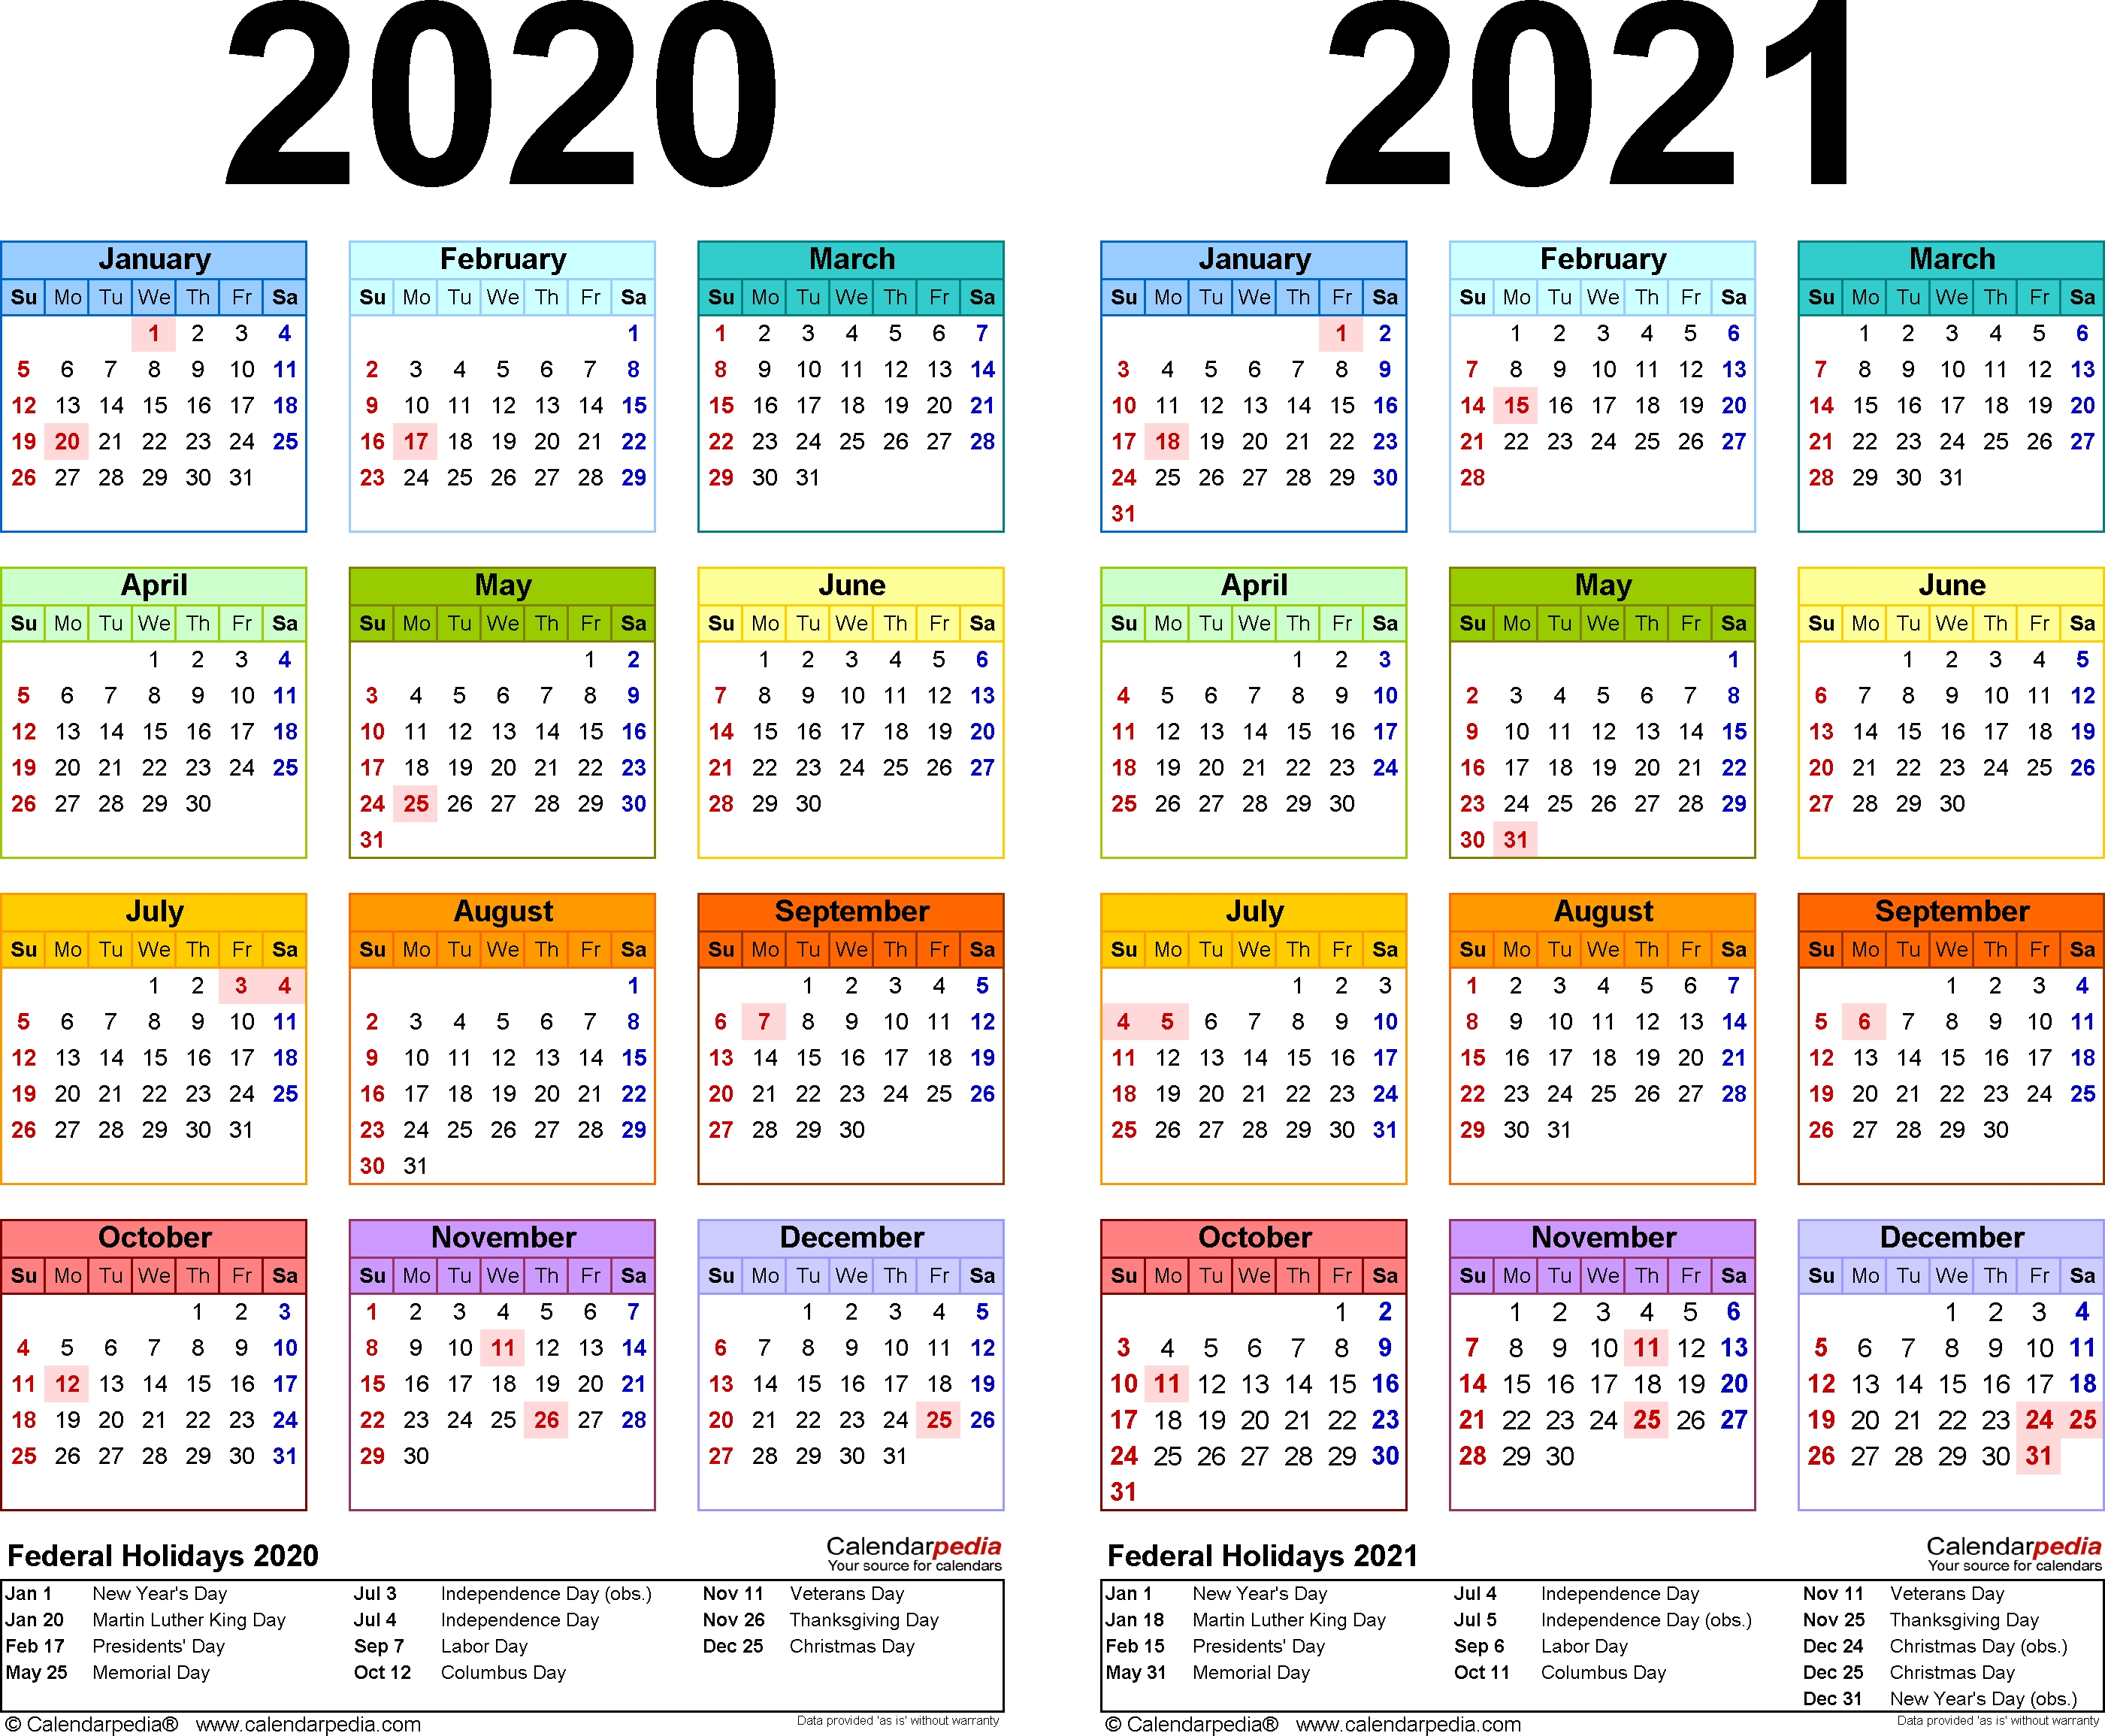 Calendar 2020 Philippines Incredible 2020 Calendar Philippines With Holidays • Printable